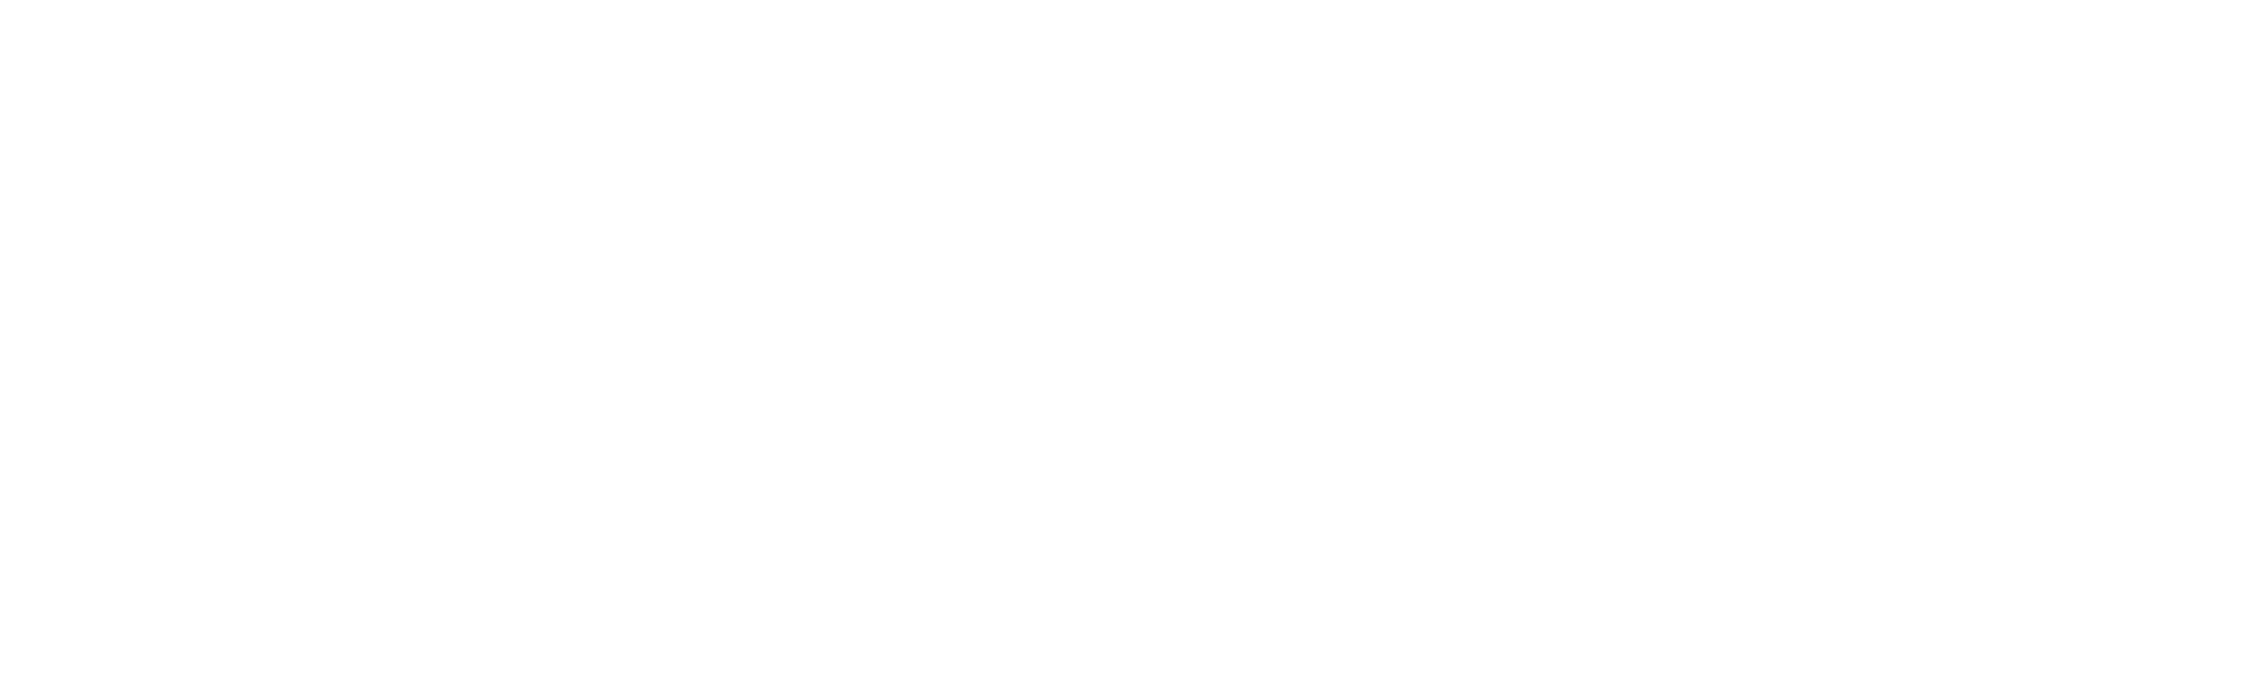 Free Spirit Wellness